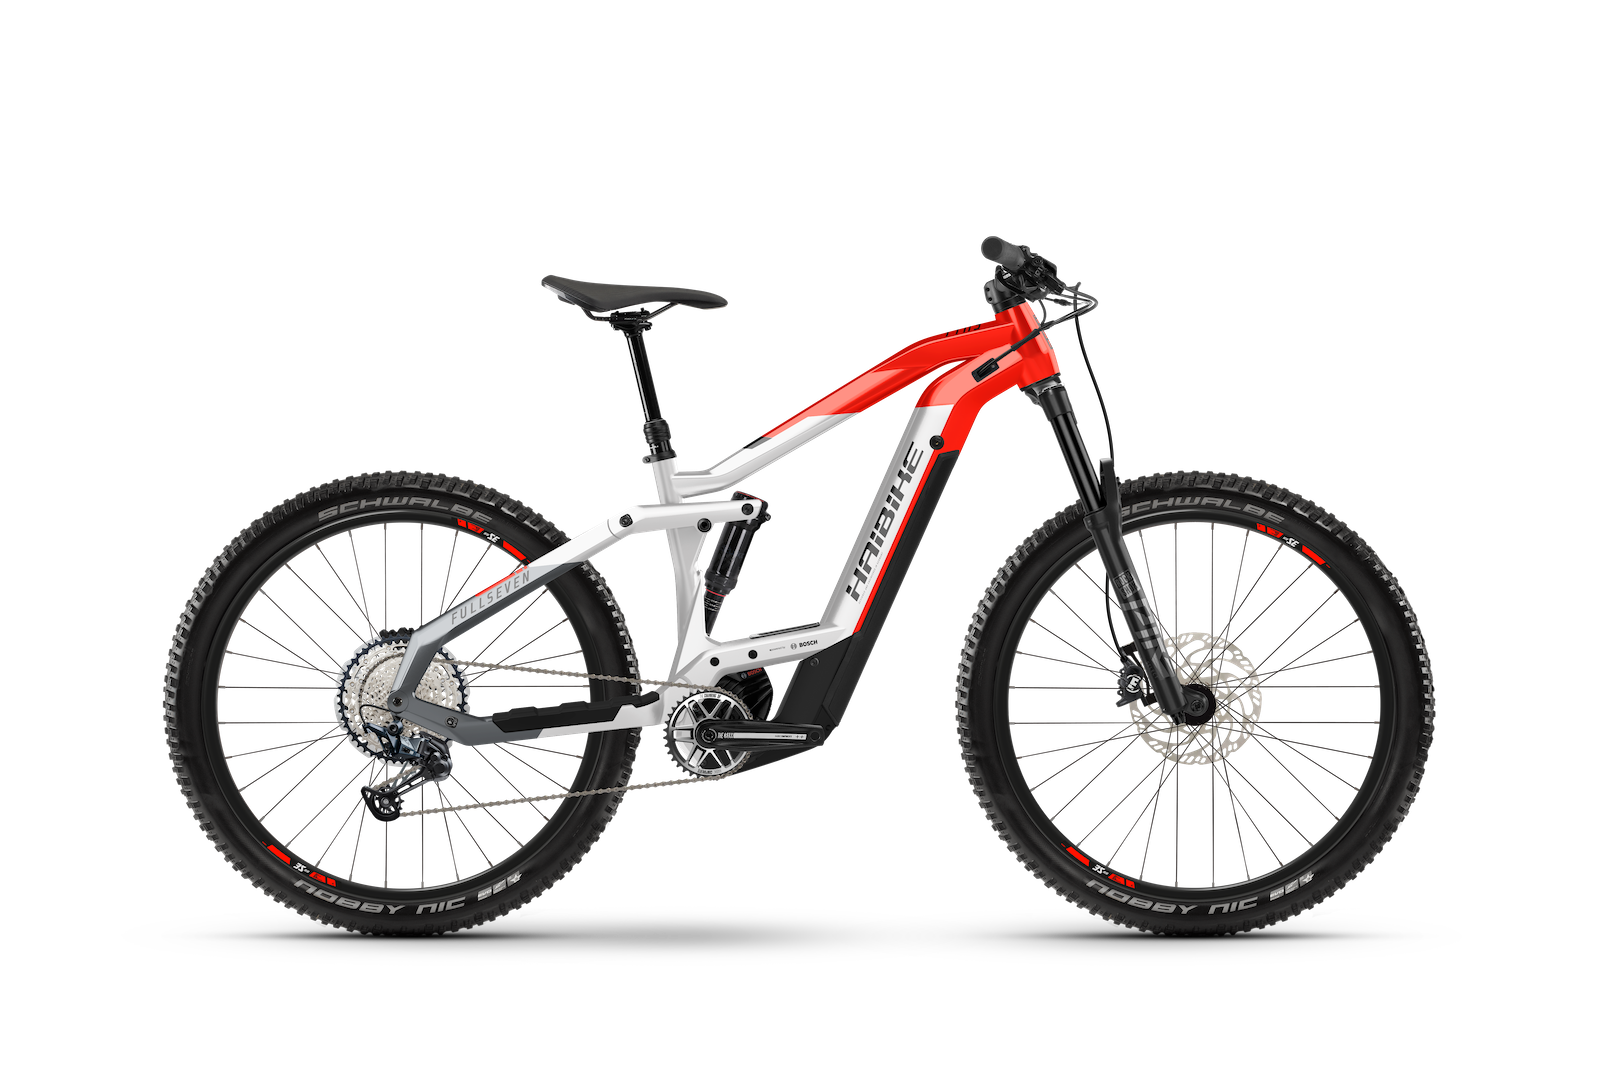 HAIBIKE FULLSEVEN 9 625Wh grey-red 2021